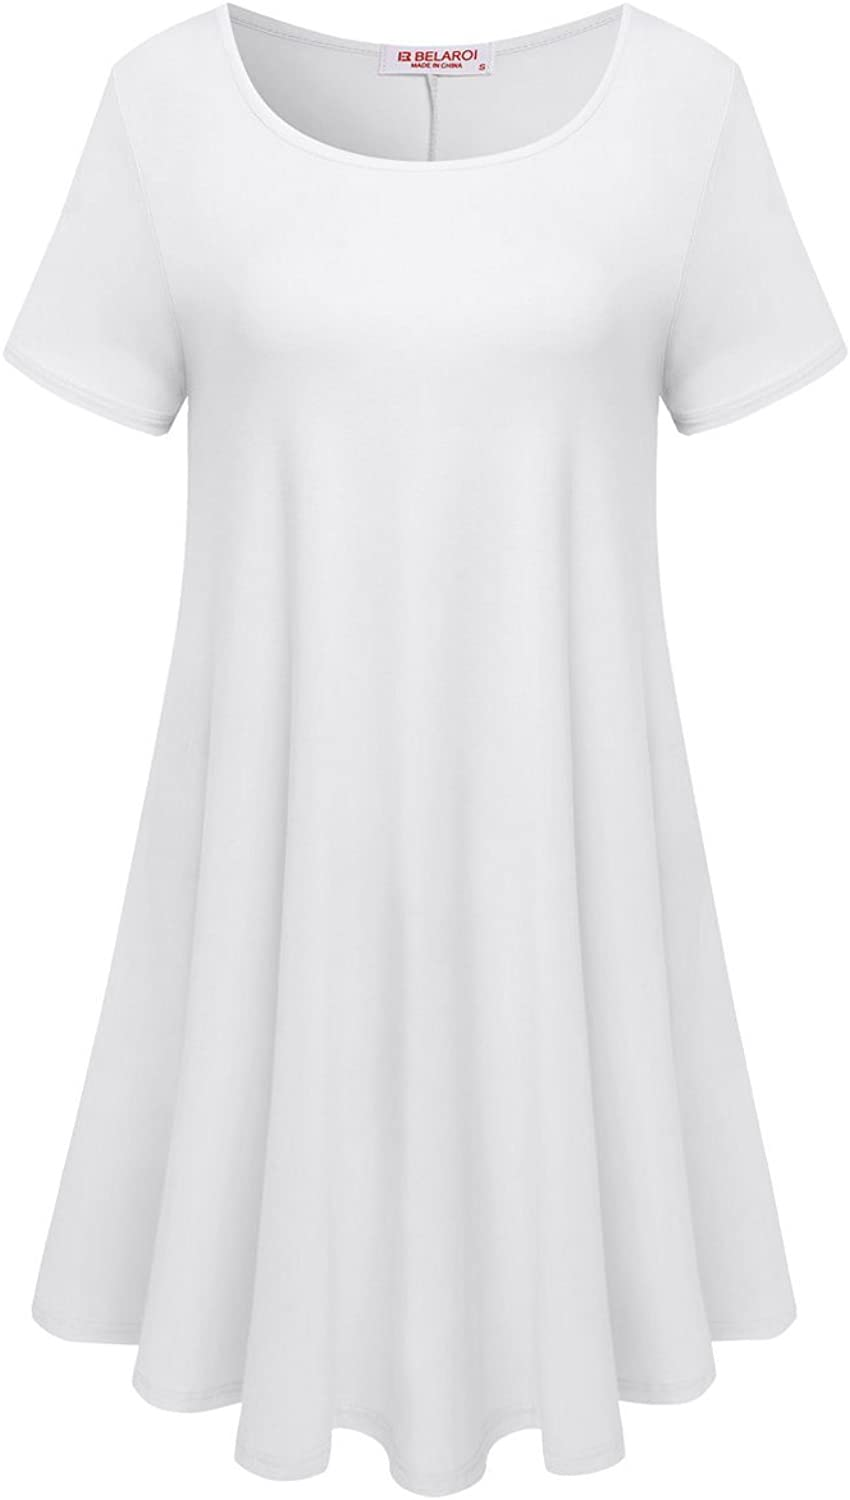 BELAROI Womens Comfy Swing Tunic Short Sleeve Solid TShirt Dress